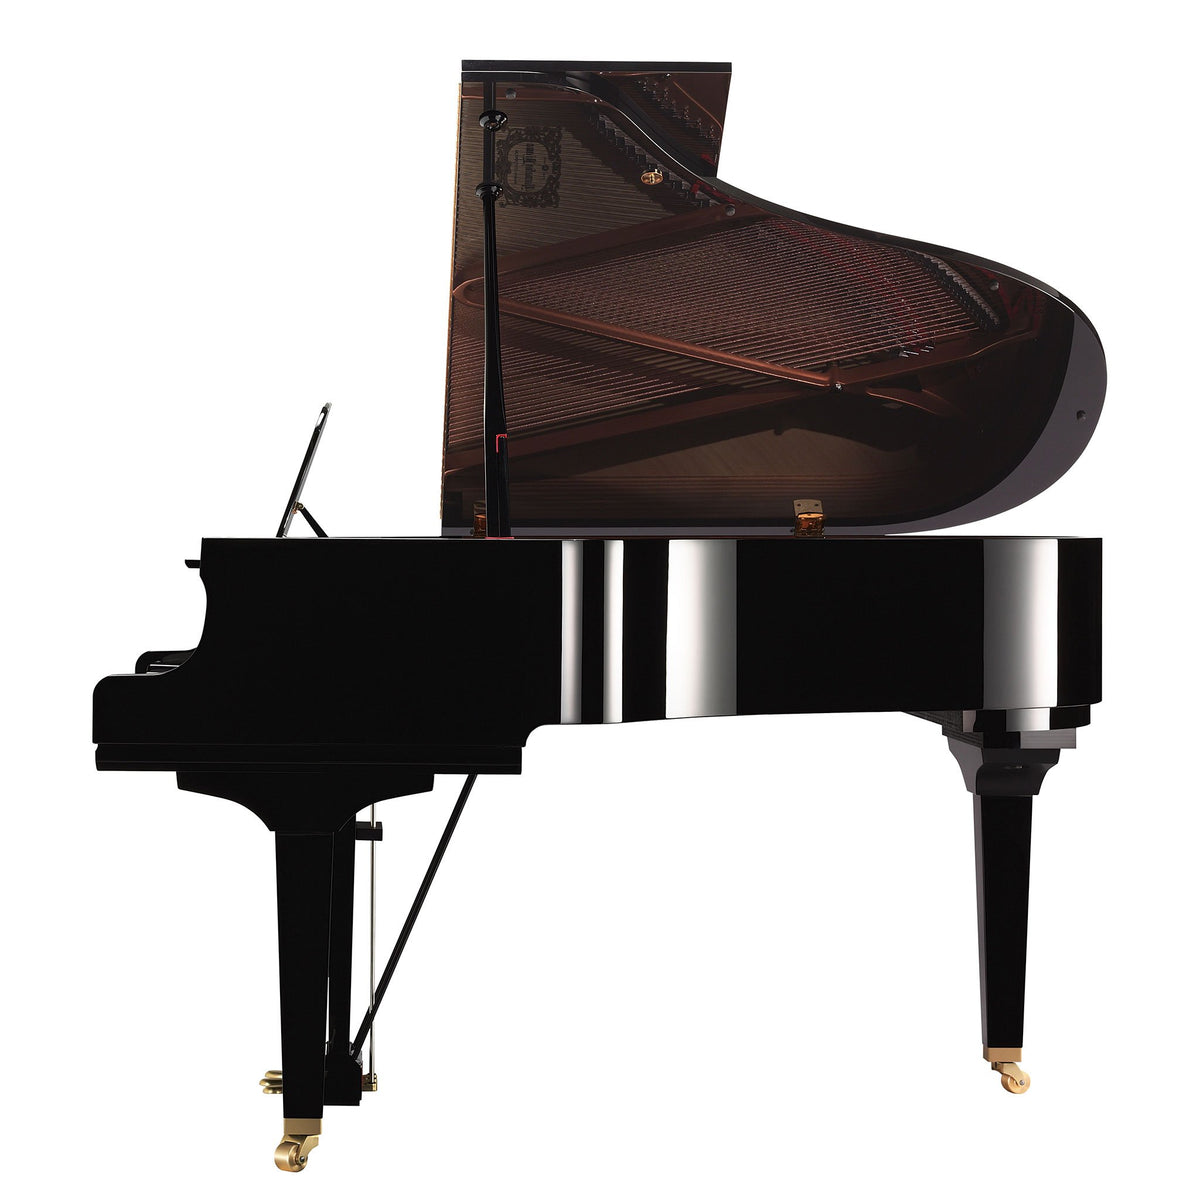 Yamaha GC2D grand piano